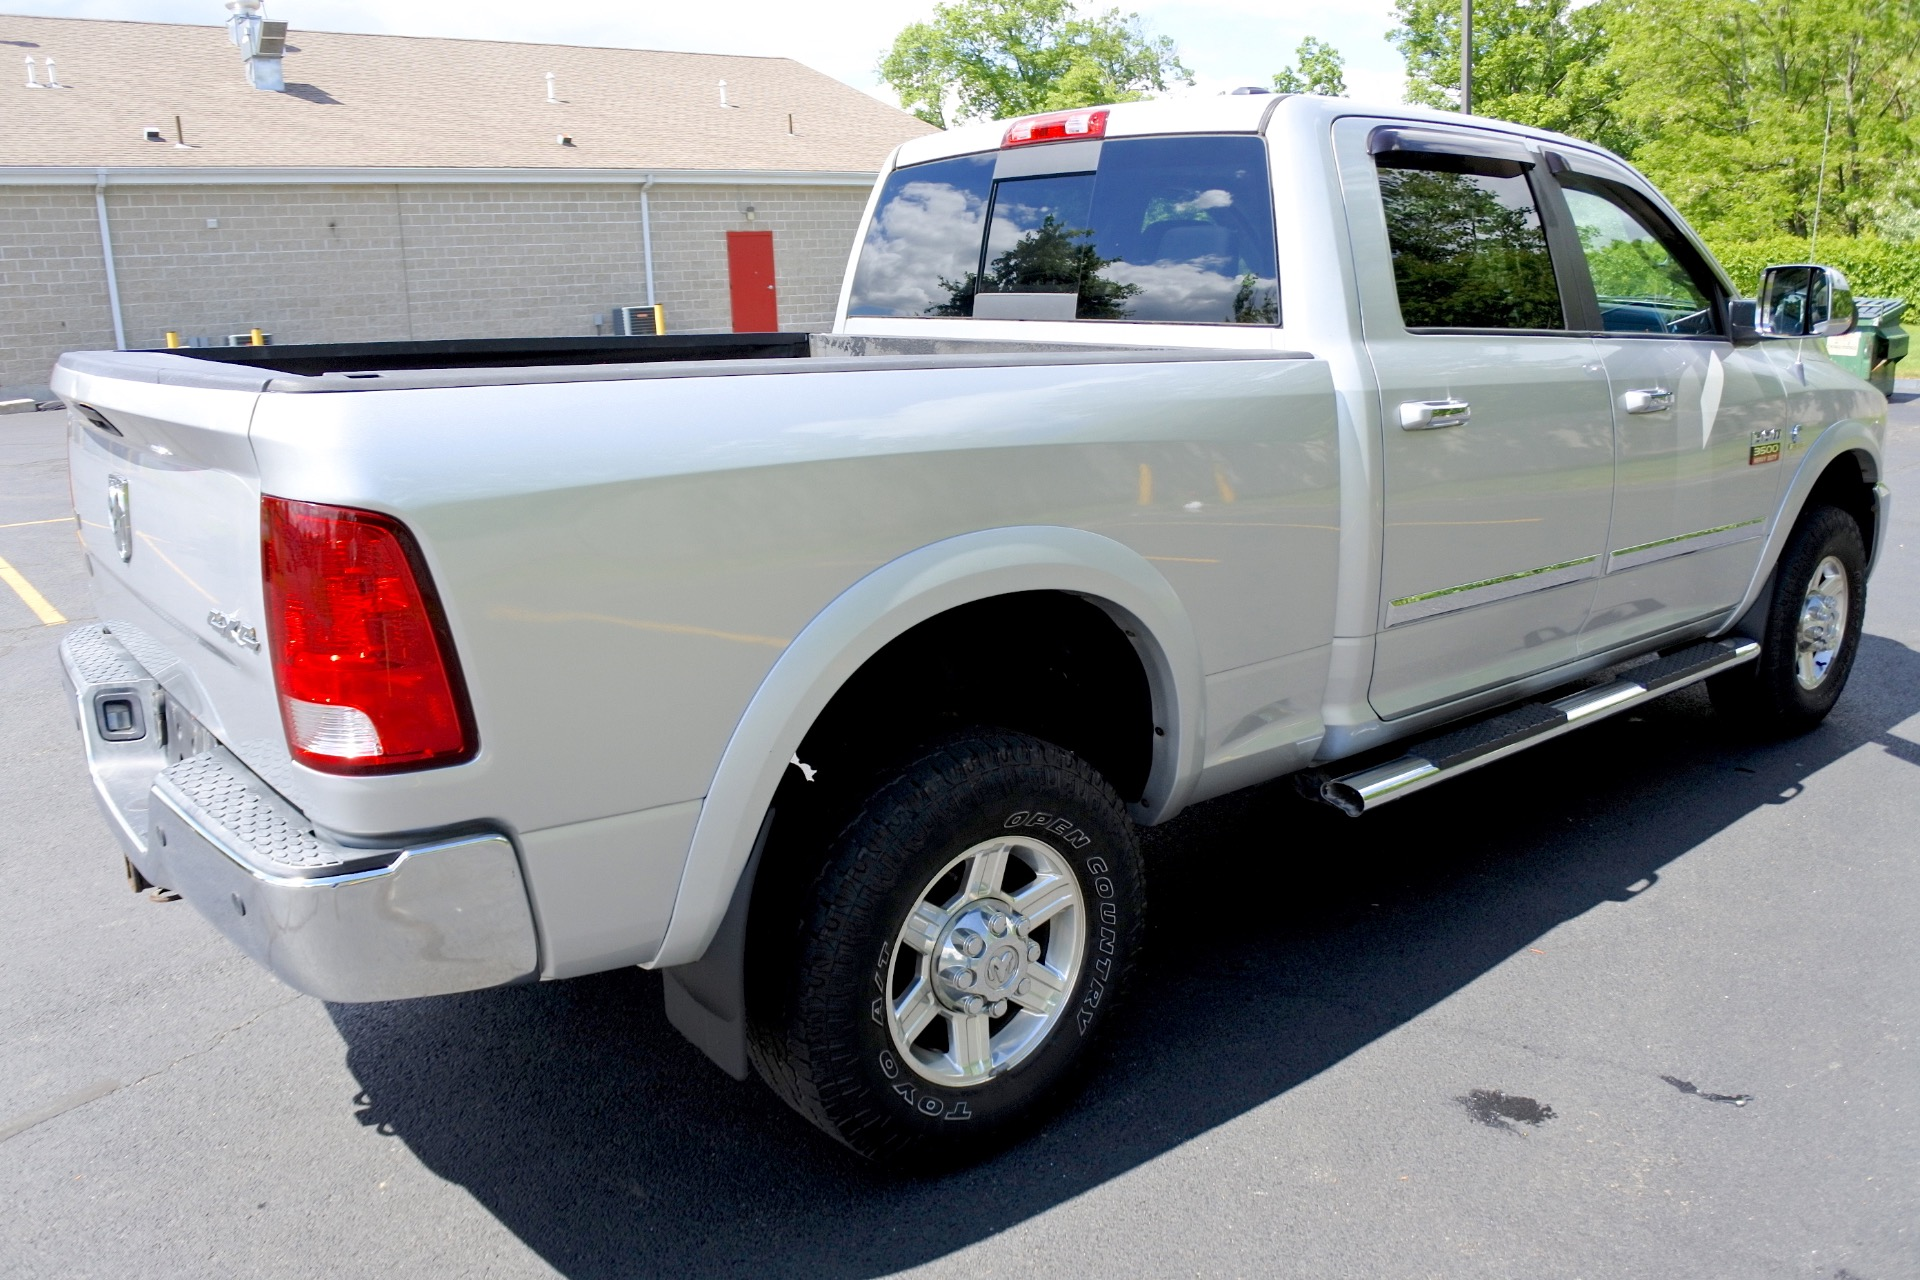 Used 2010 Dodge Ram 3500 4WD Crew Cab 149' Laramie Used 2010 Dodge Ram 3500 4WD Crew Cab 149' Laramie for sale  at Metro West Motorcars LLC in Shrewsbury MA 5